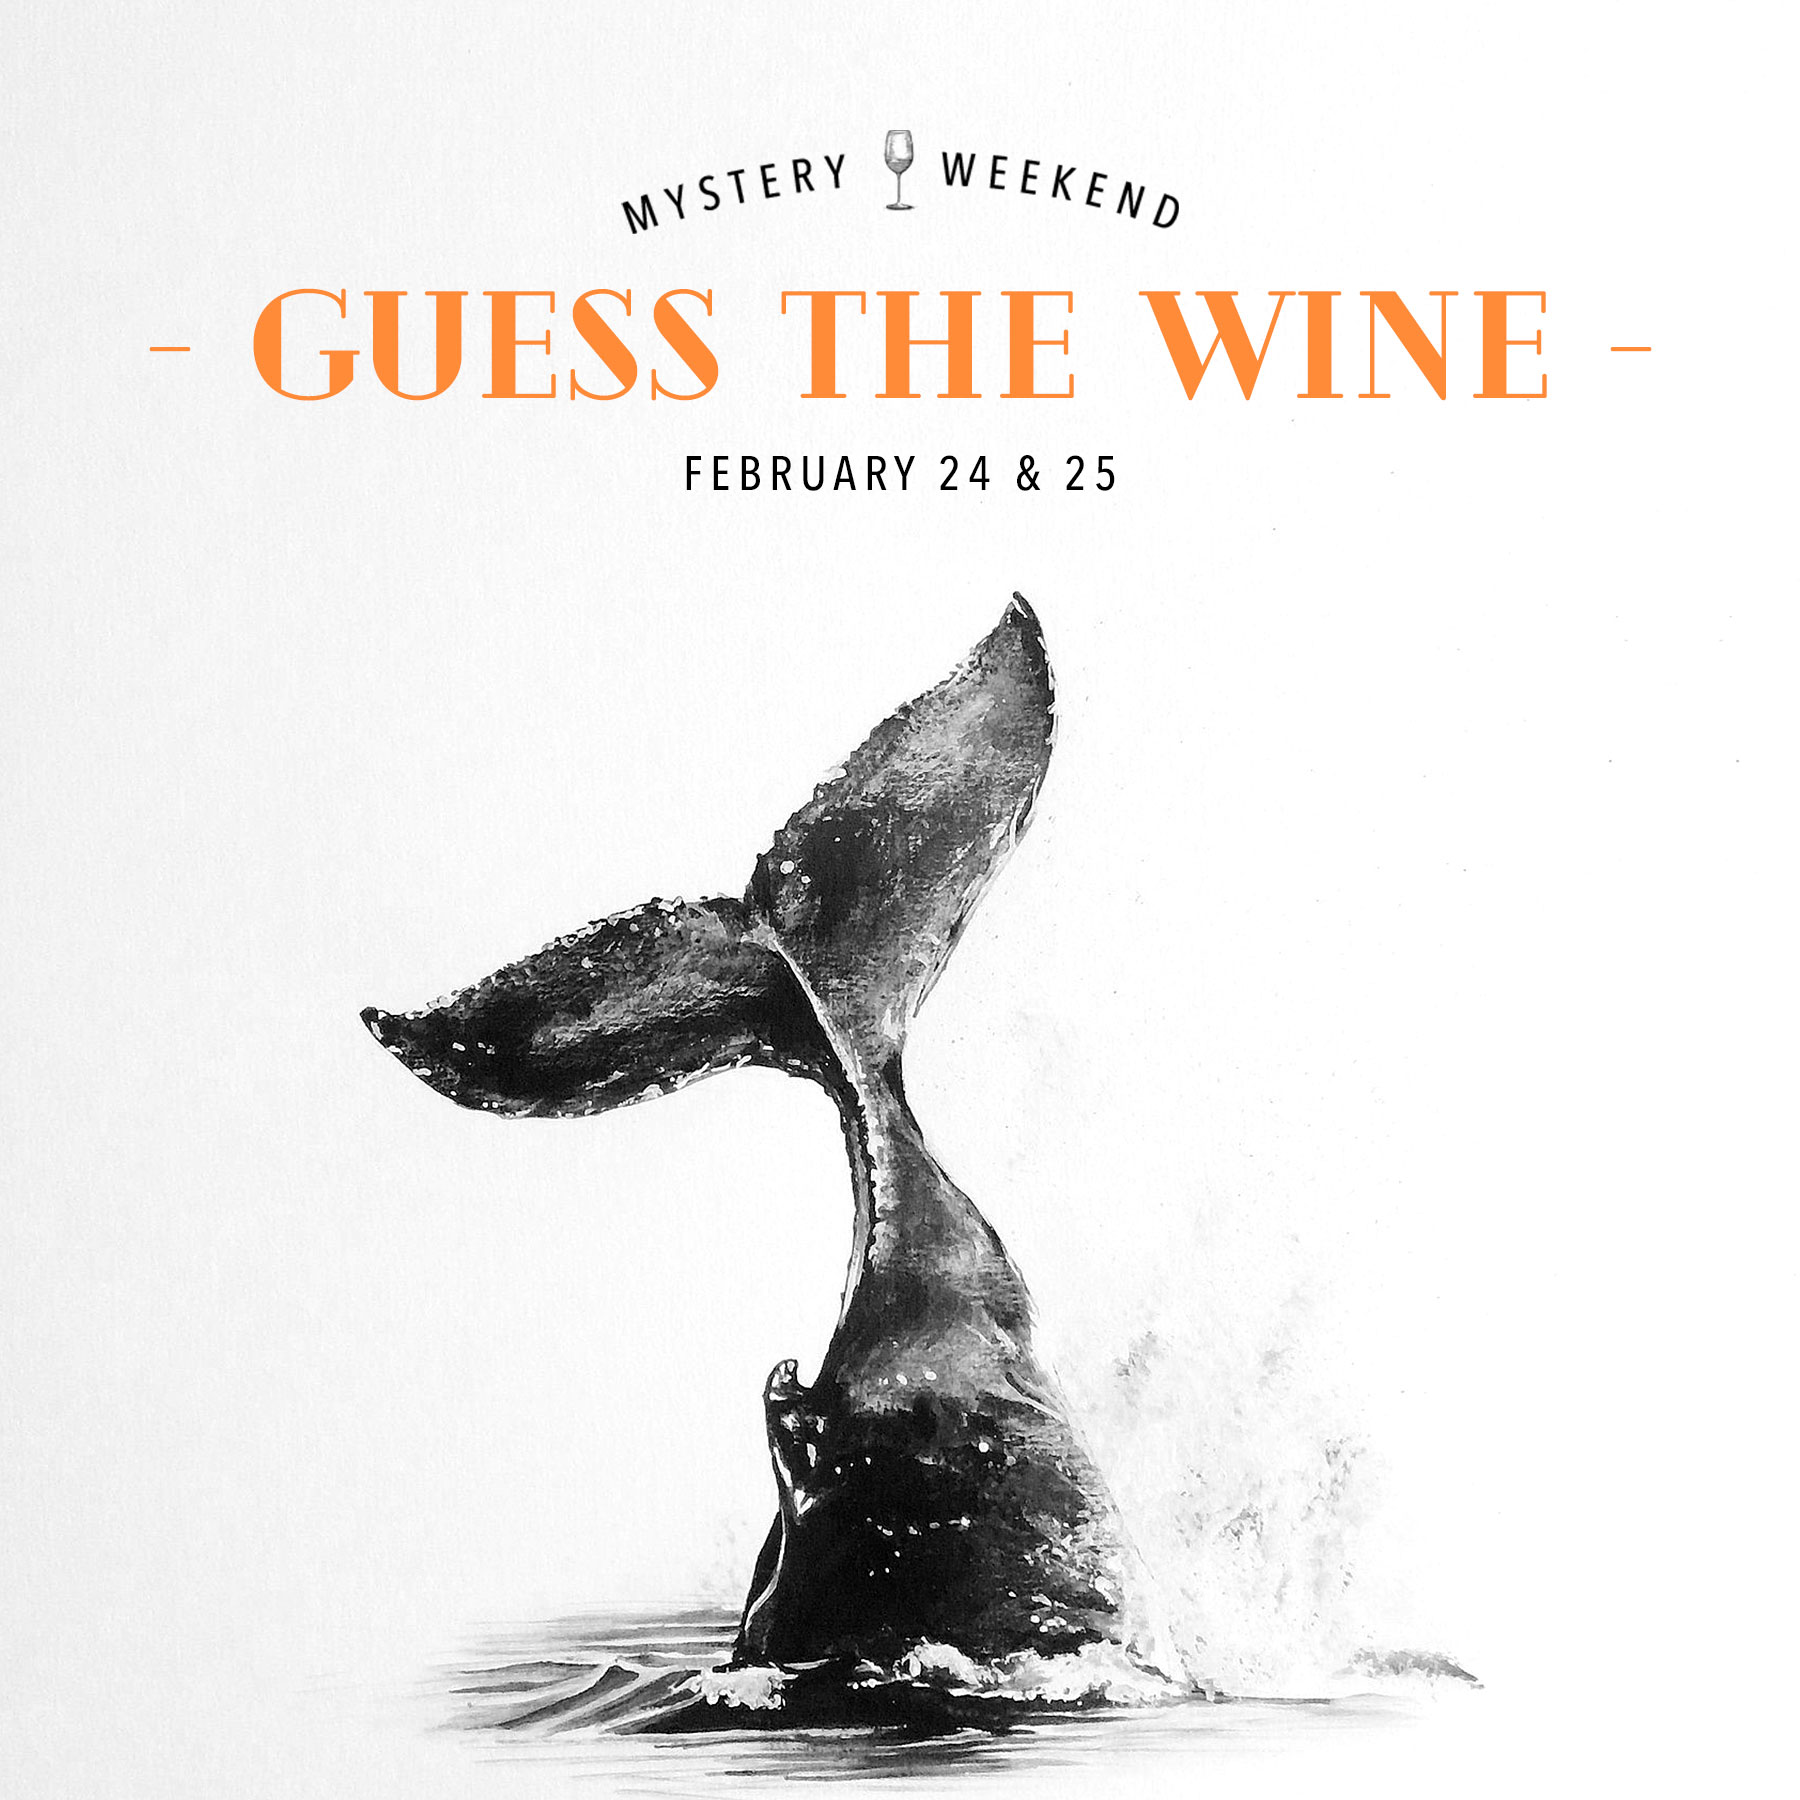 Guess the Wine Langley Mystery Weekend Feb 24&25 Village Wine Shop